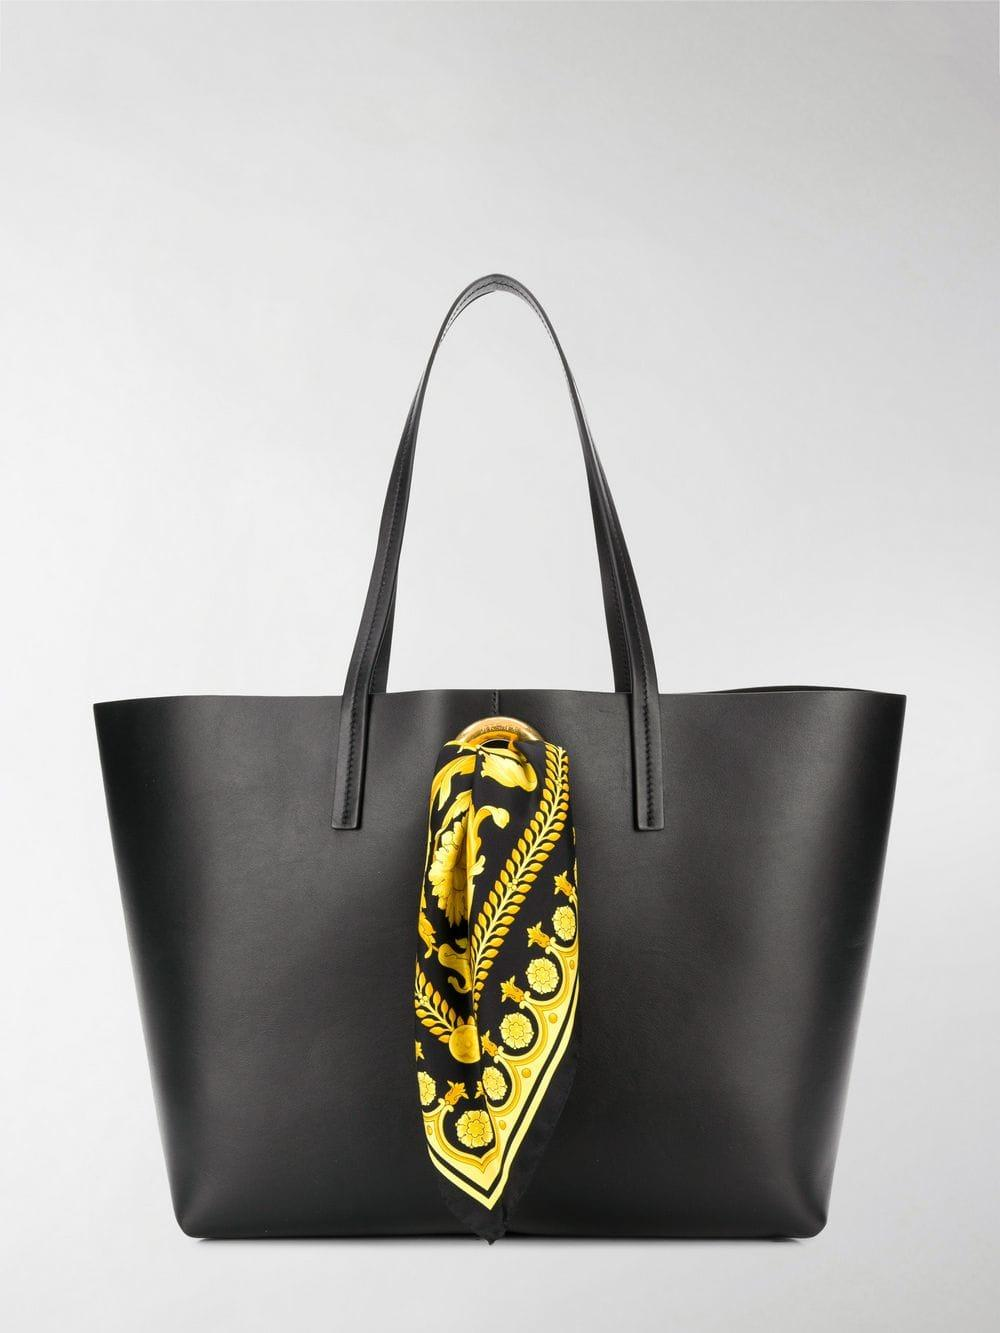 e58a49d5a757 Lyst - Versace Baroque Scarf Tote Bag in Black